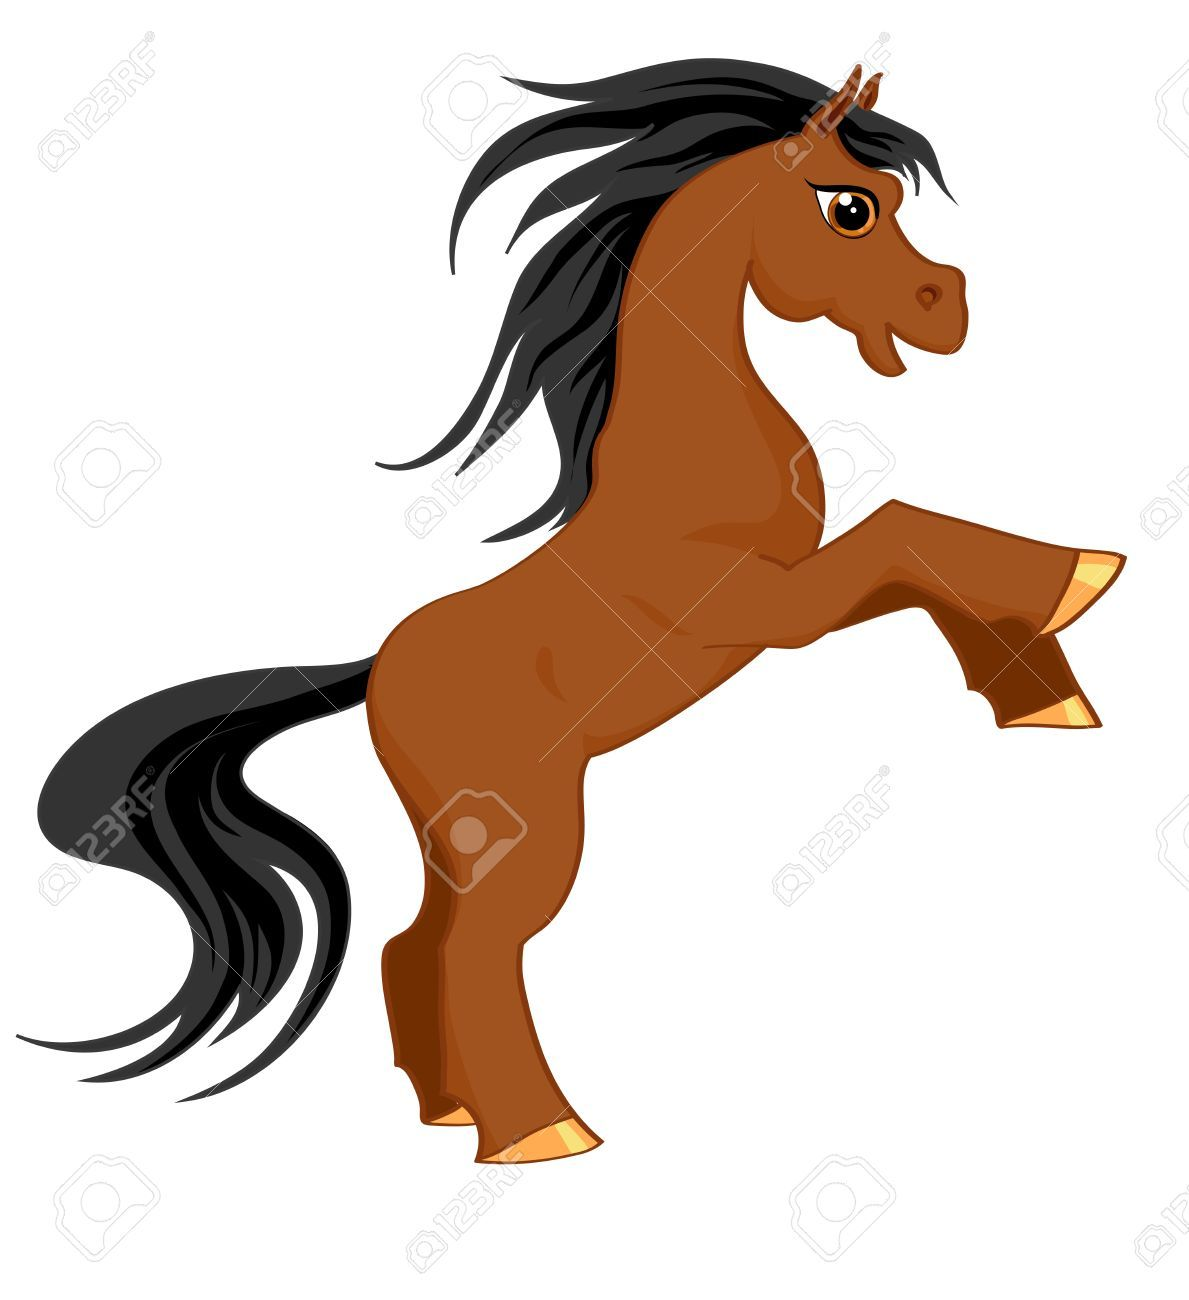 Horse tail clipart vector transparent Horse tail clipart 5 » Clipart Portal vector transparent